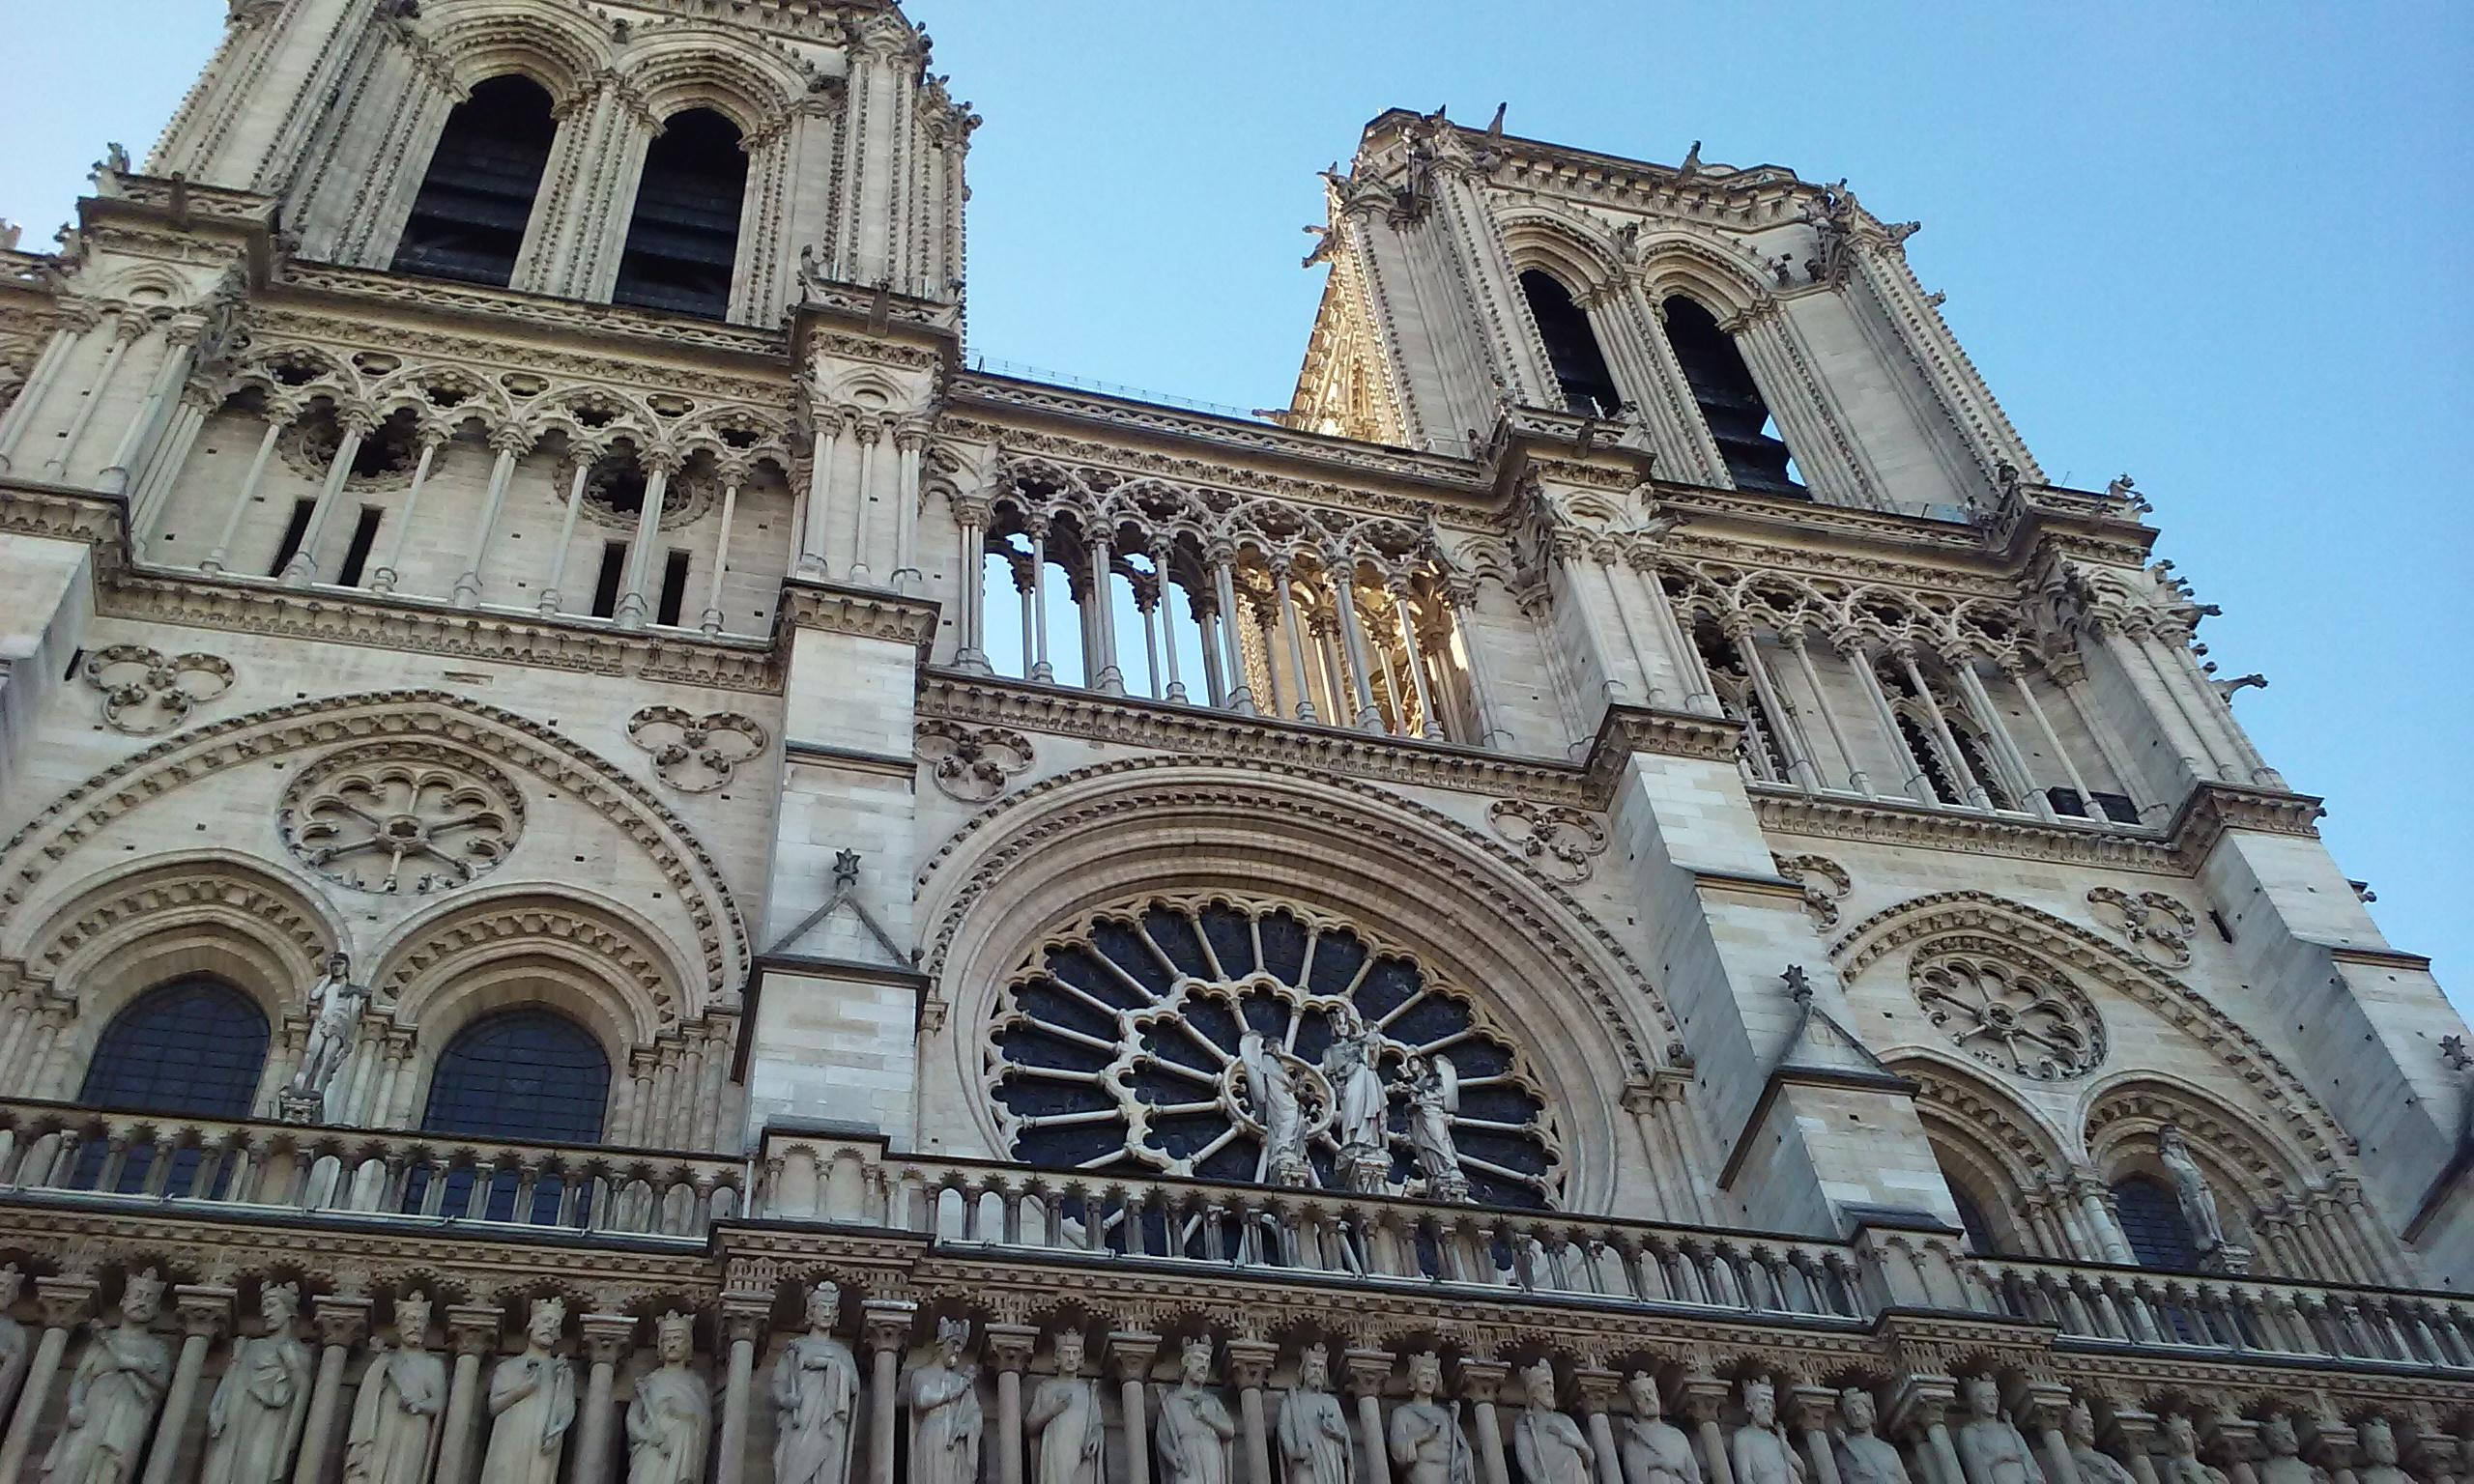 Notre Dame during the day. The intricate work above the front entrance.